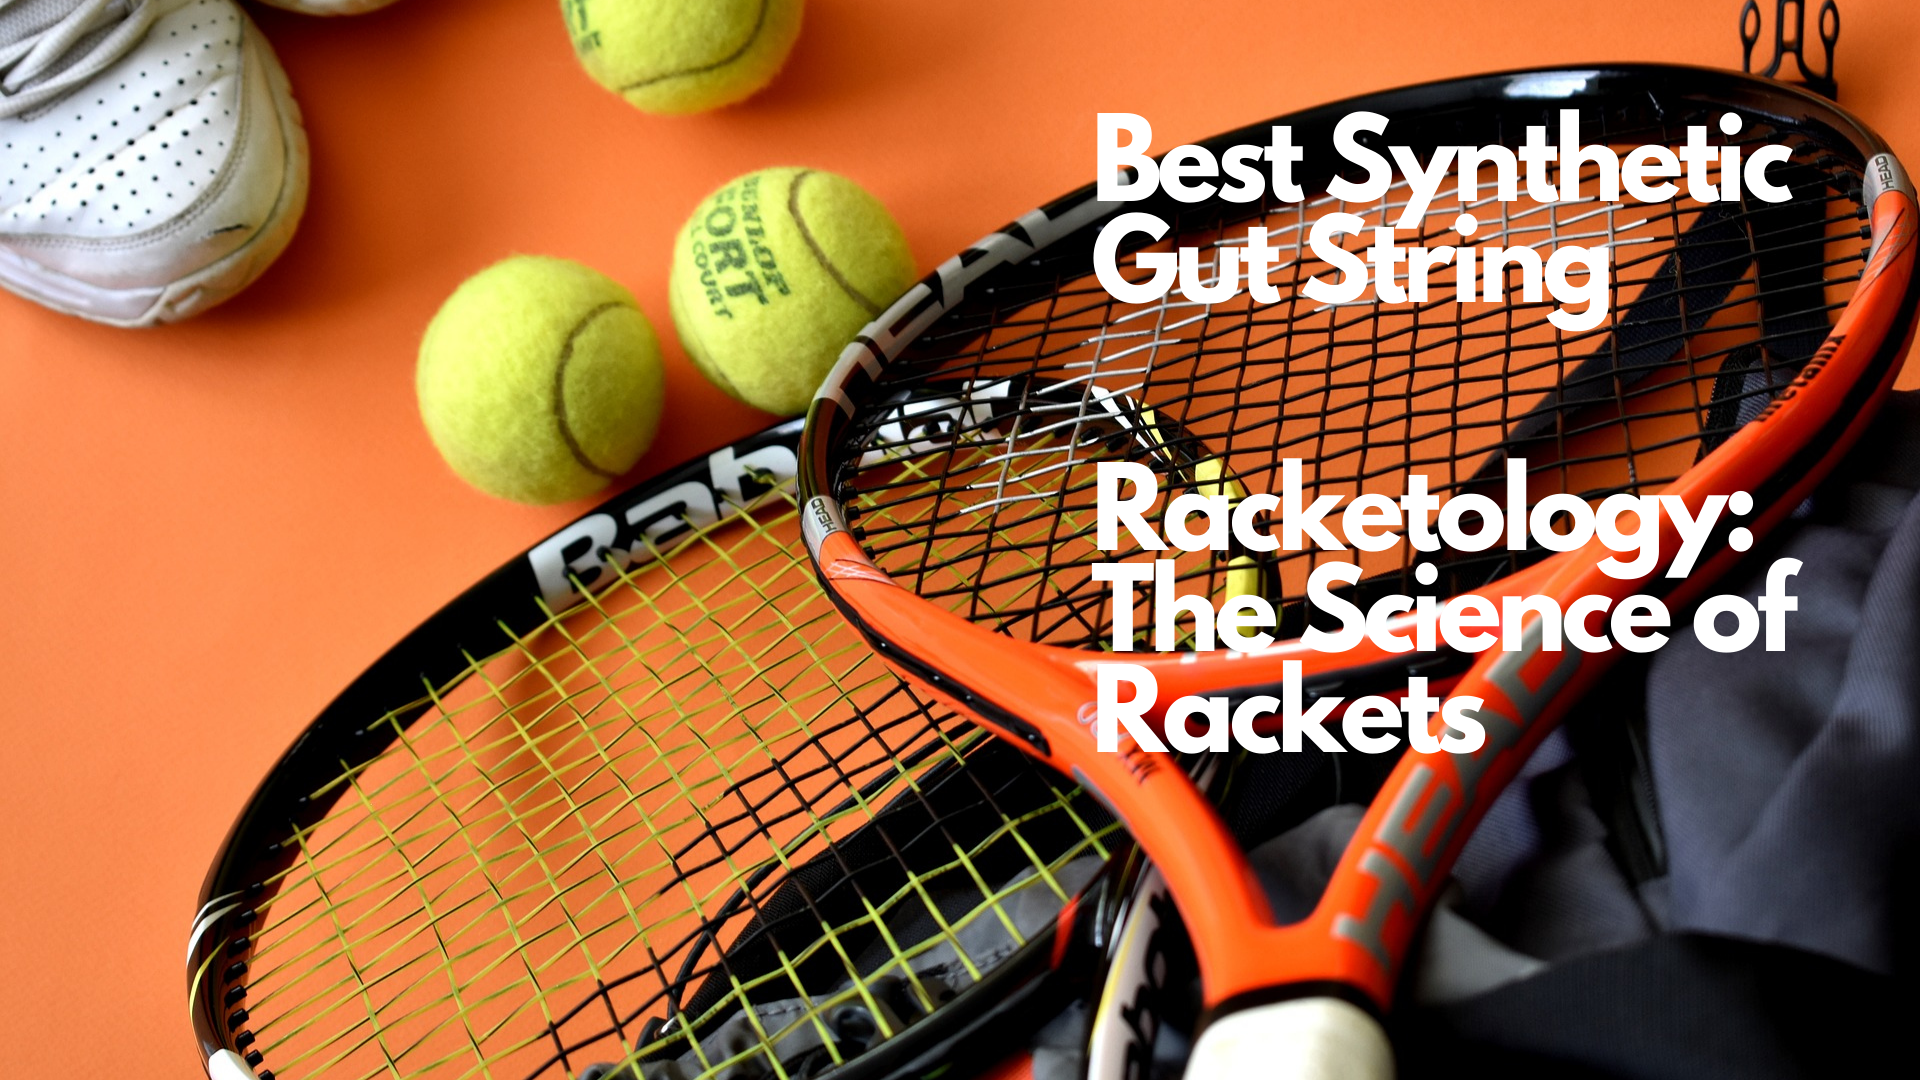 best synthetic gut string